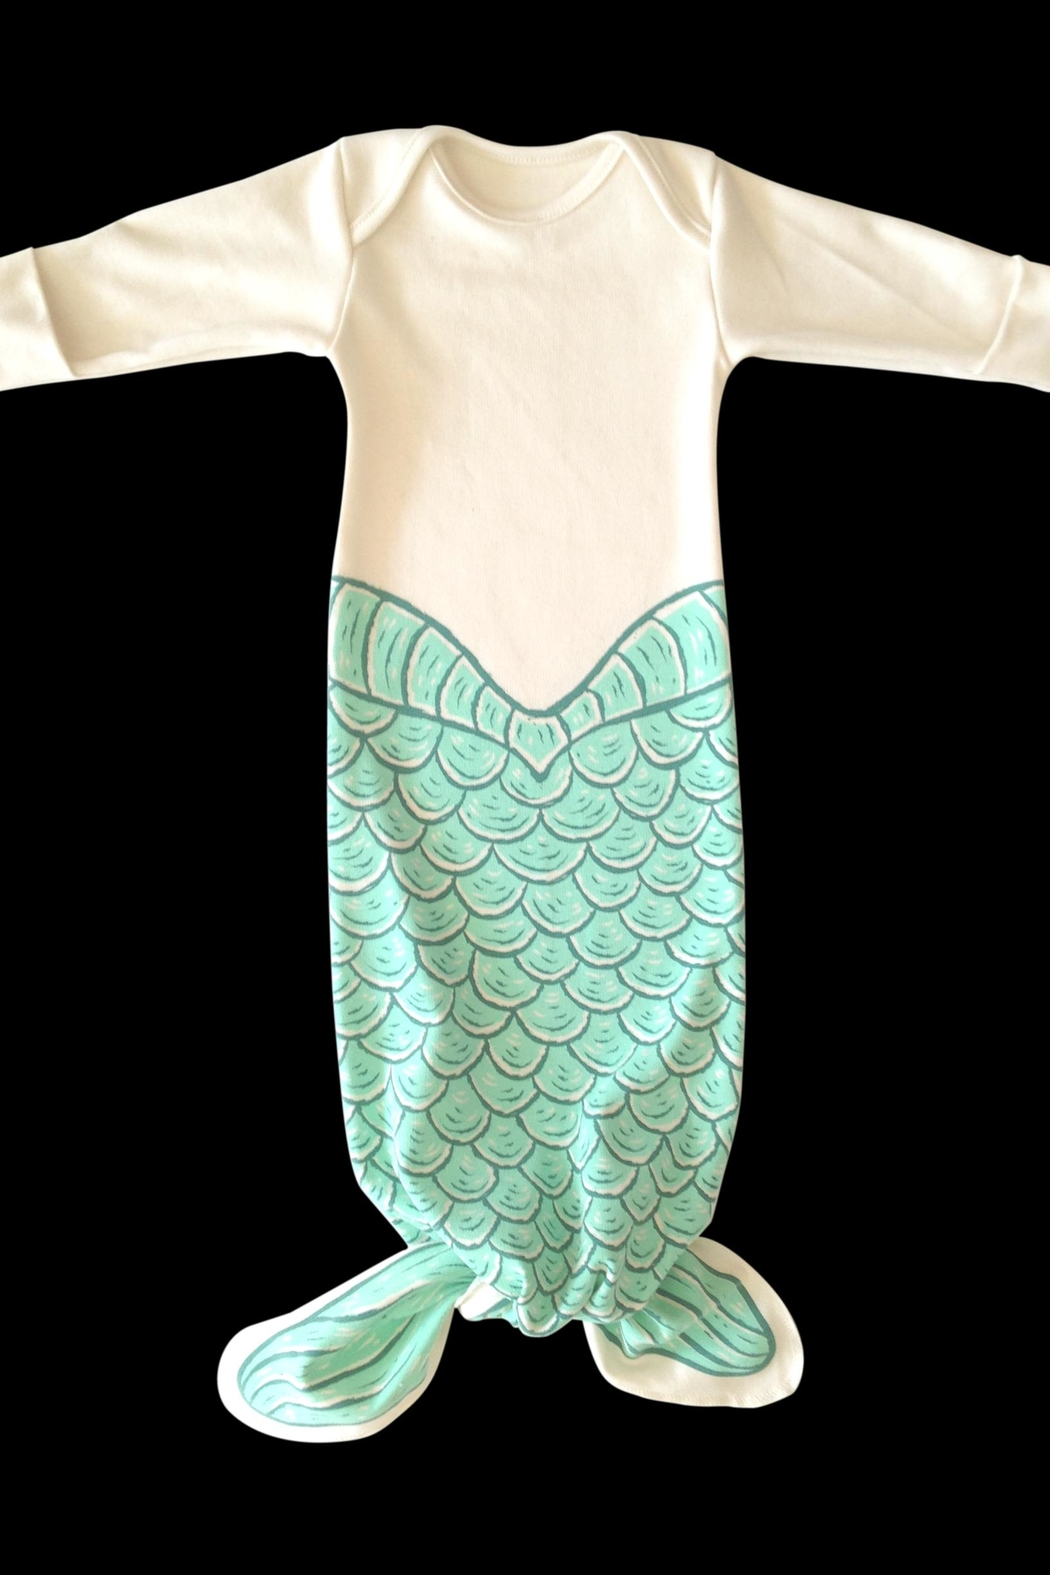 Electrik Kidz Knotted Gown - Mermaid2 - Main Image